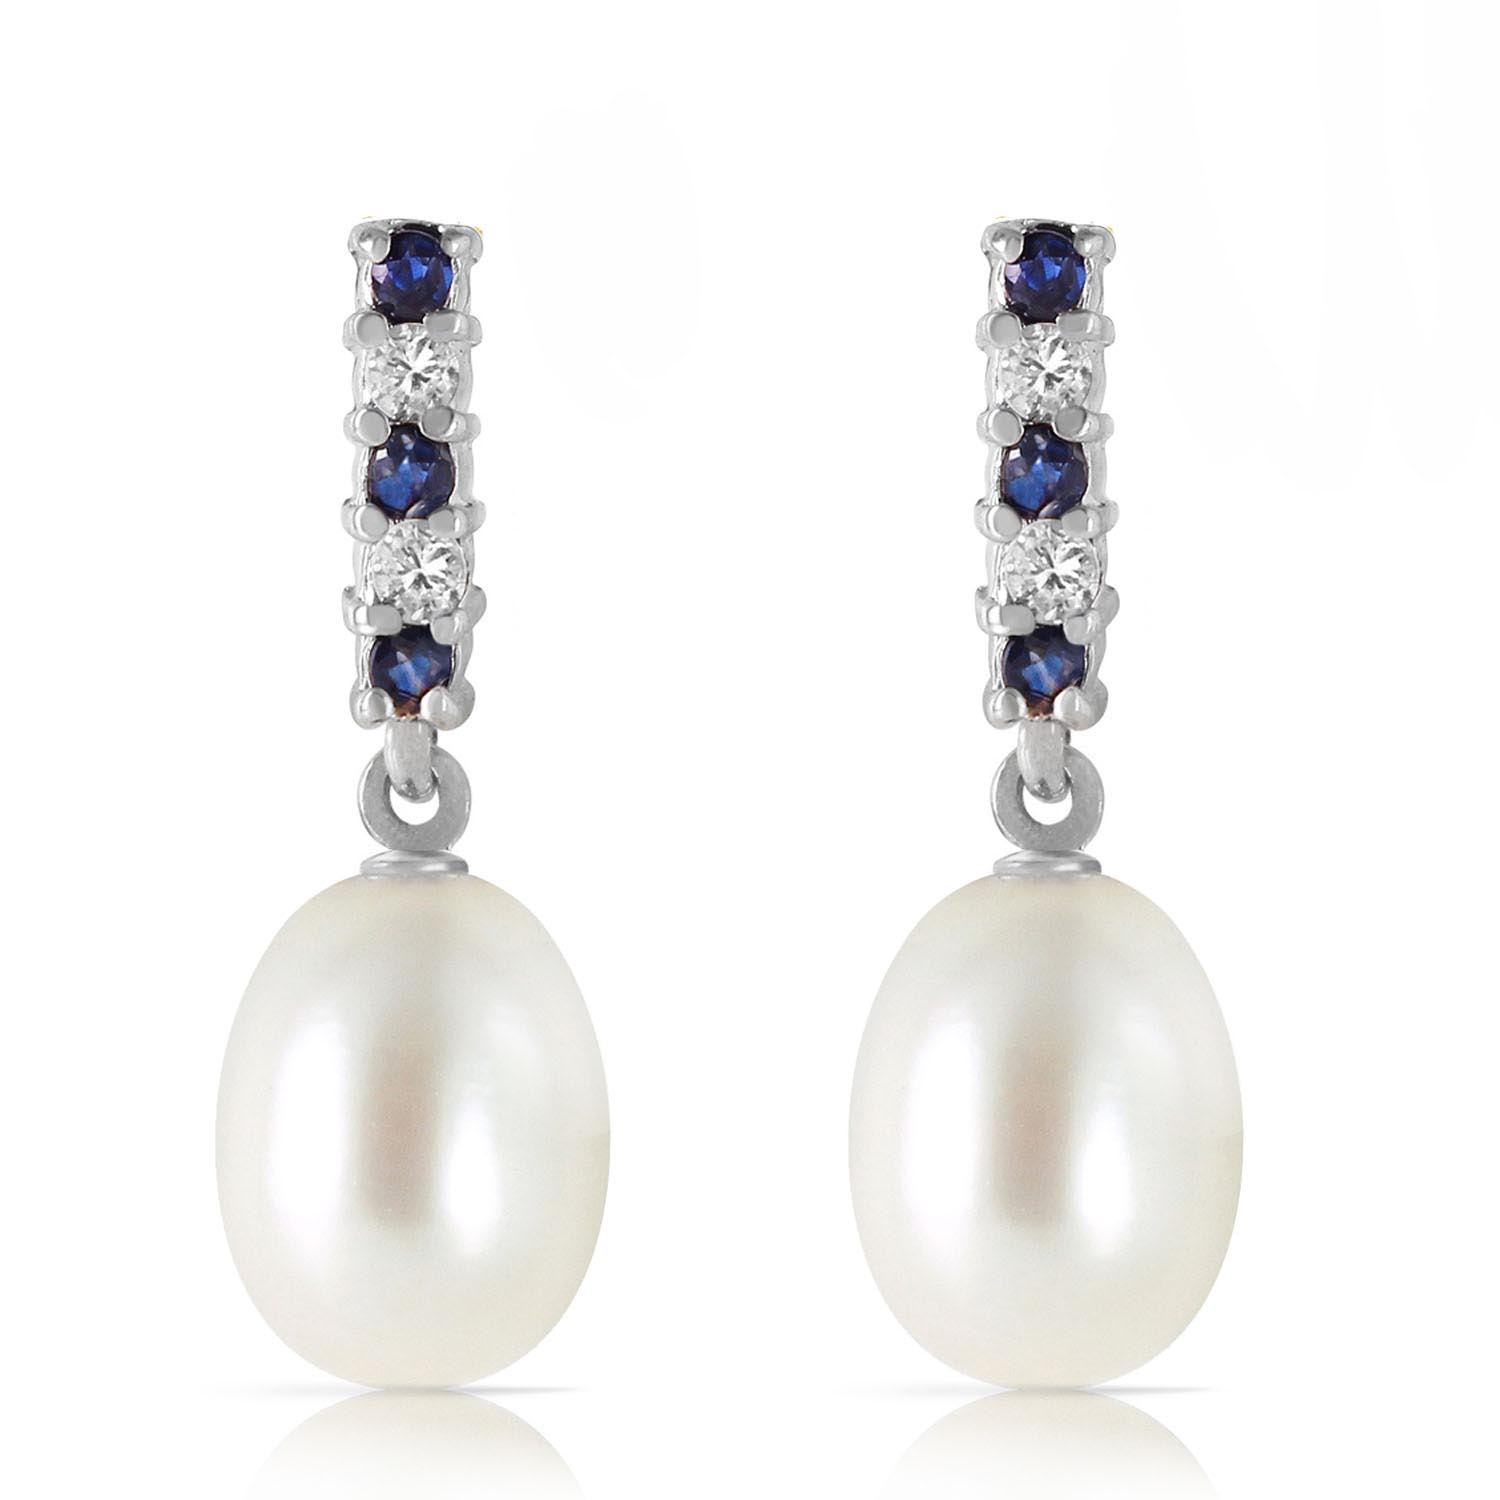 Pearl, Sapphire and Diamond Stud Earrings 8.24ctw in 9ct White Gold